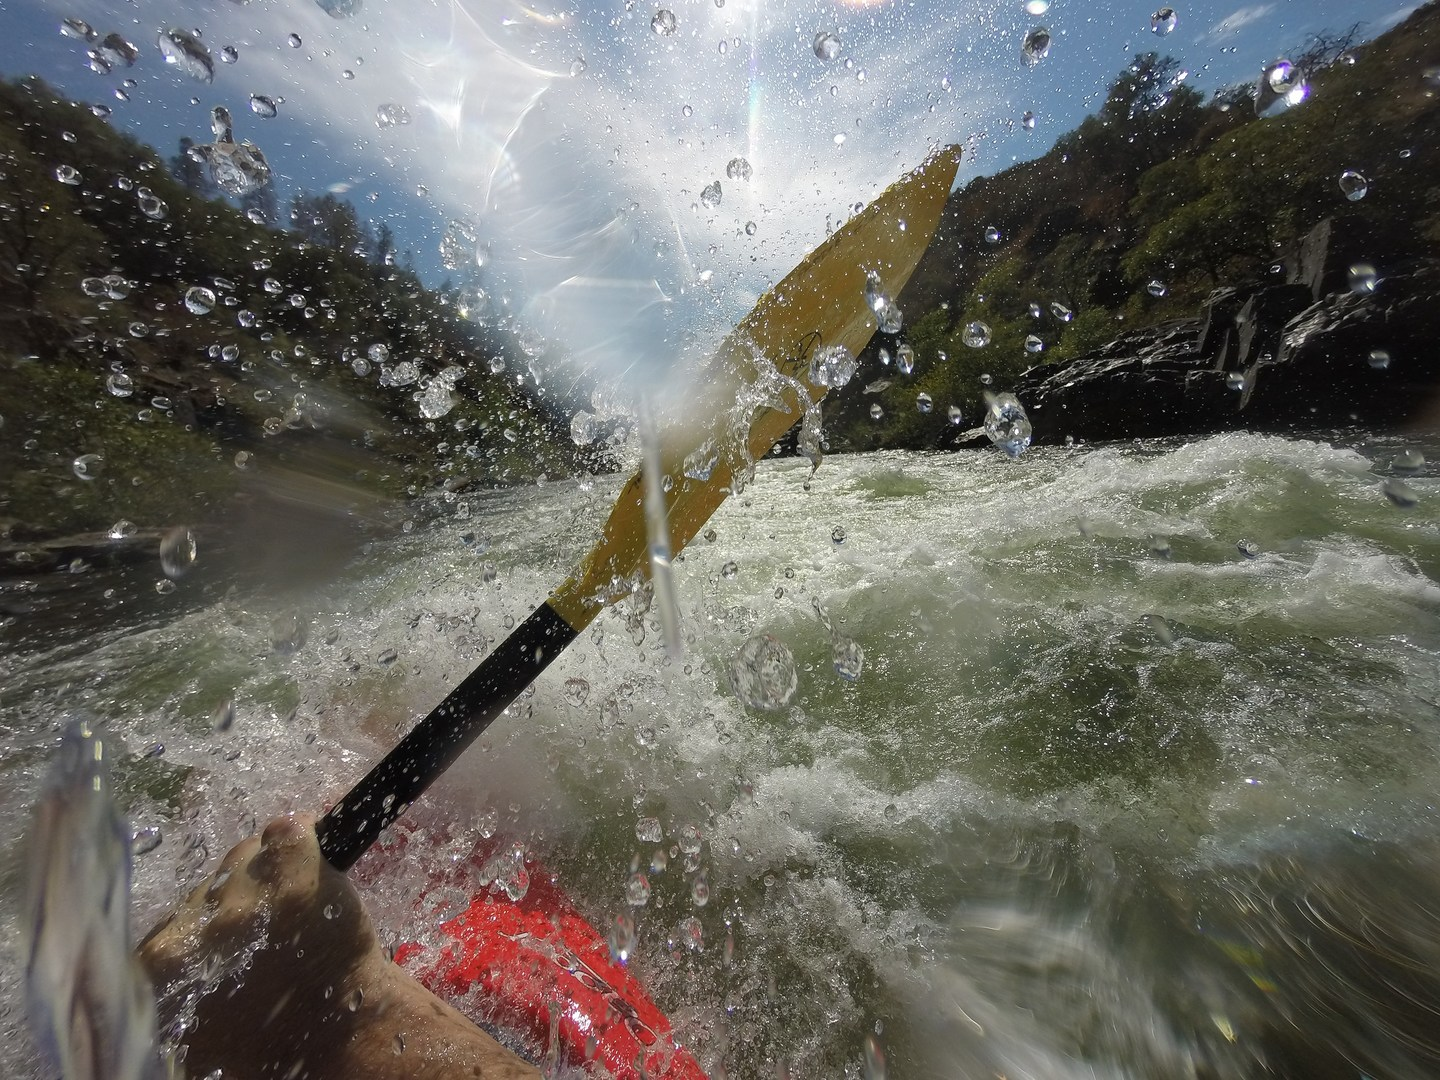 South Fork of the American River: The Gorge, Greenwood to Salmon